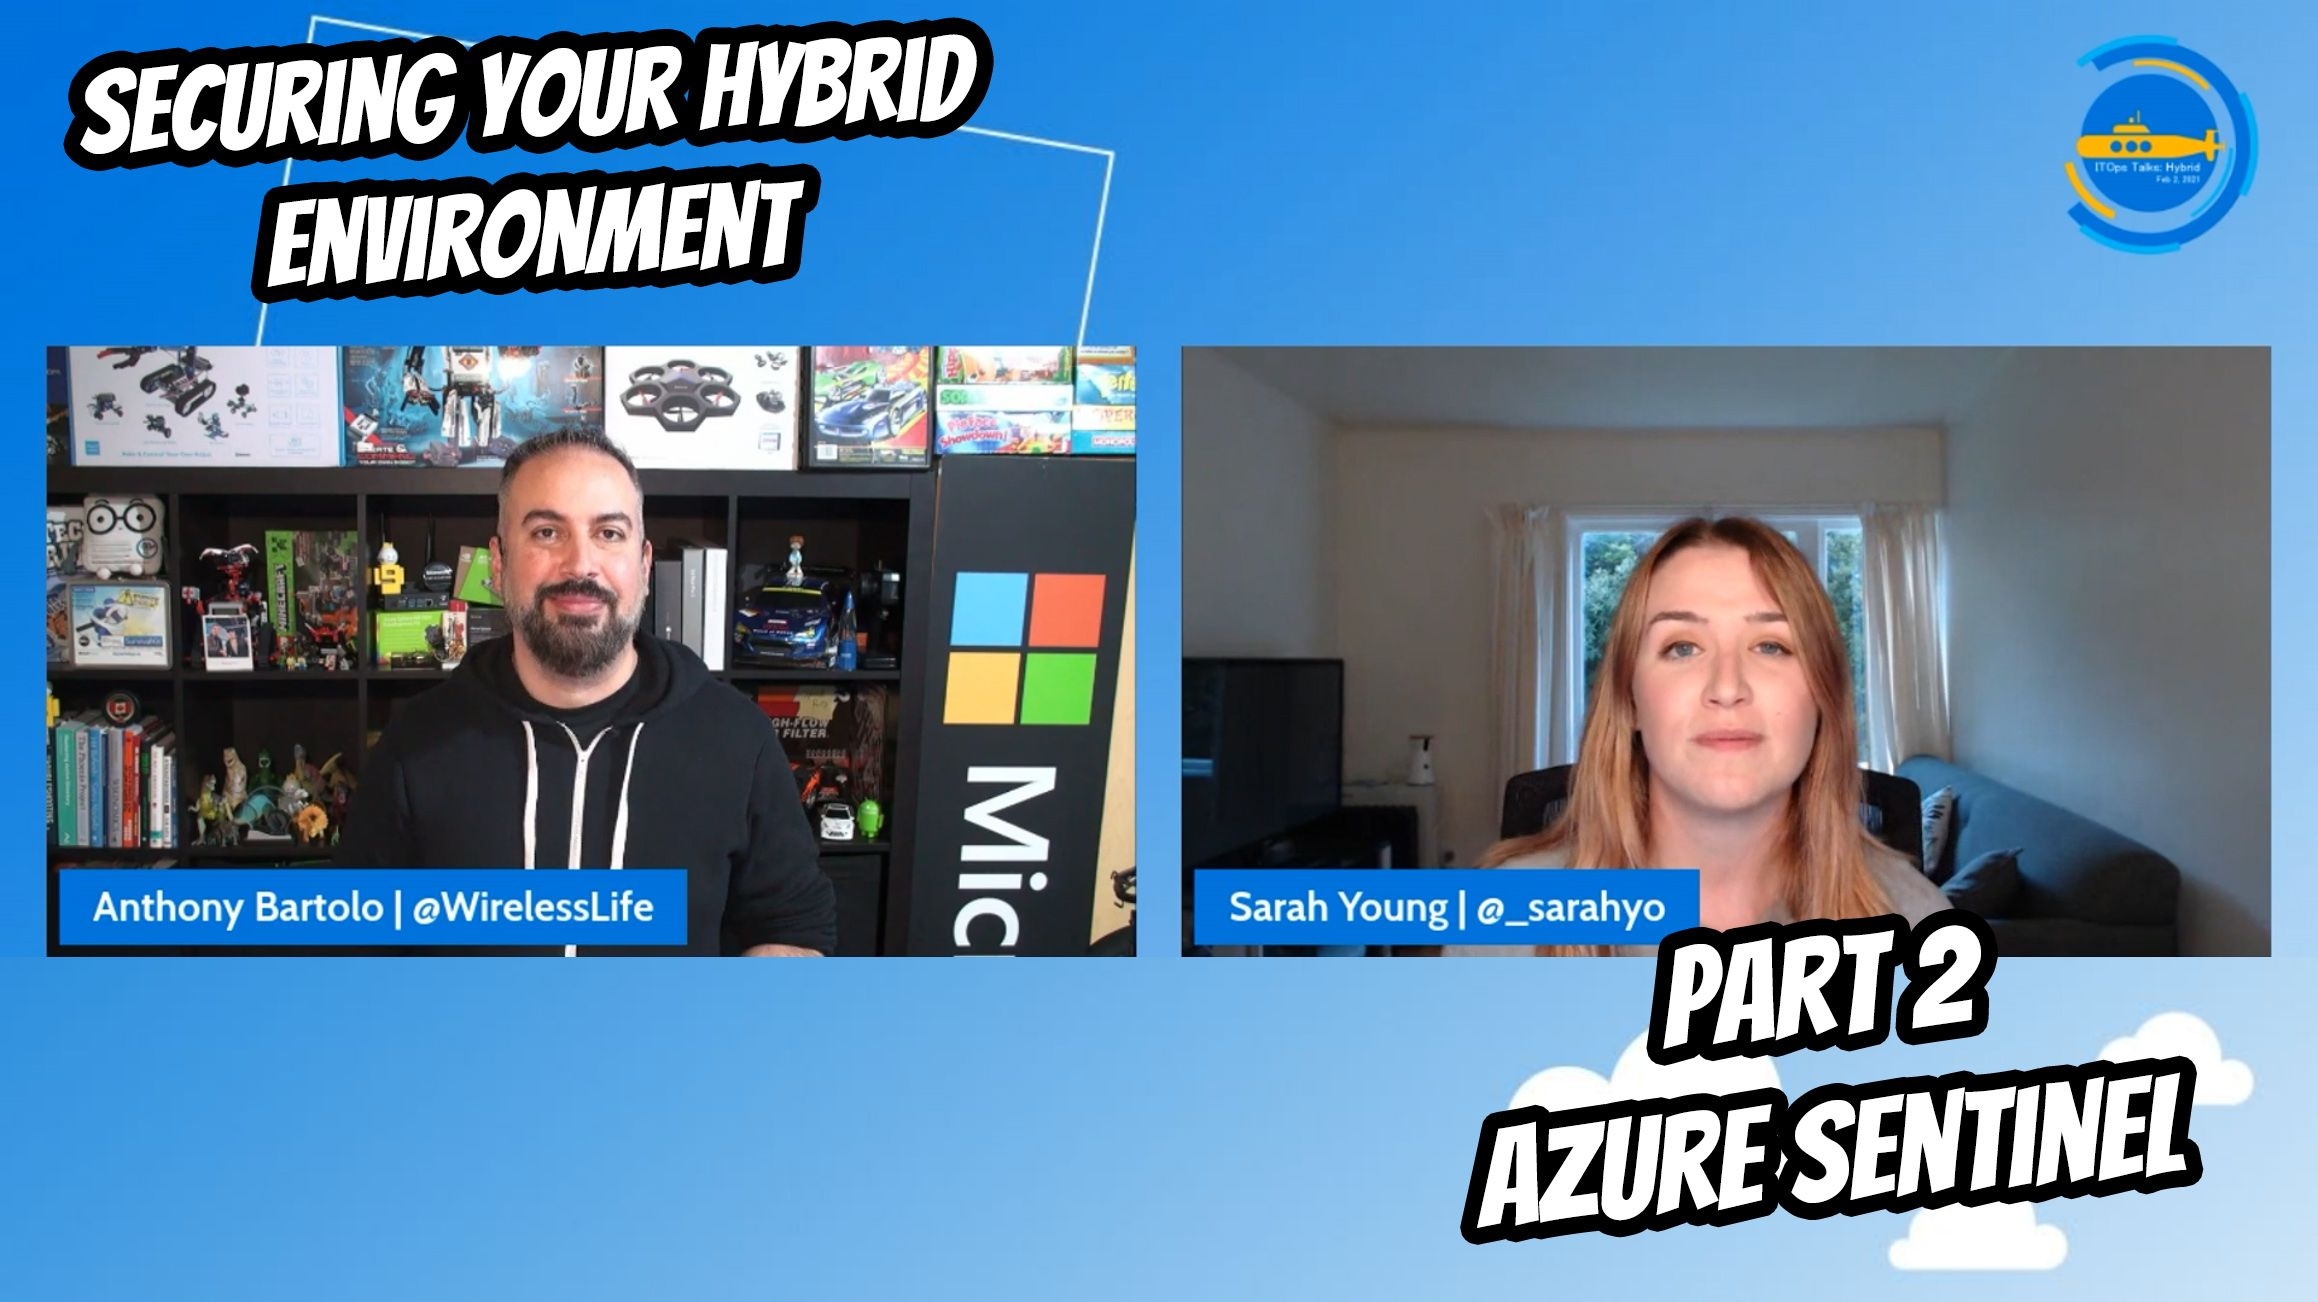 OPS103: Securing your Hybrid environment - Part 2 - Azure Sentinel